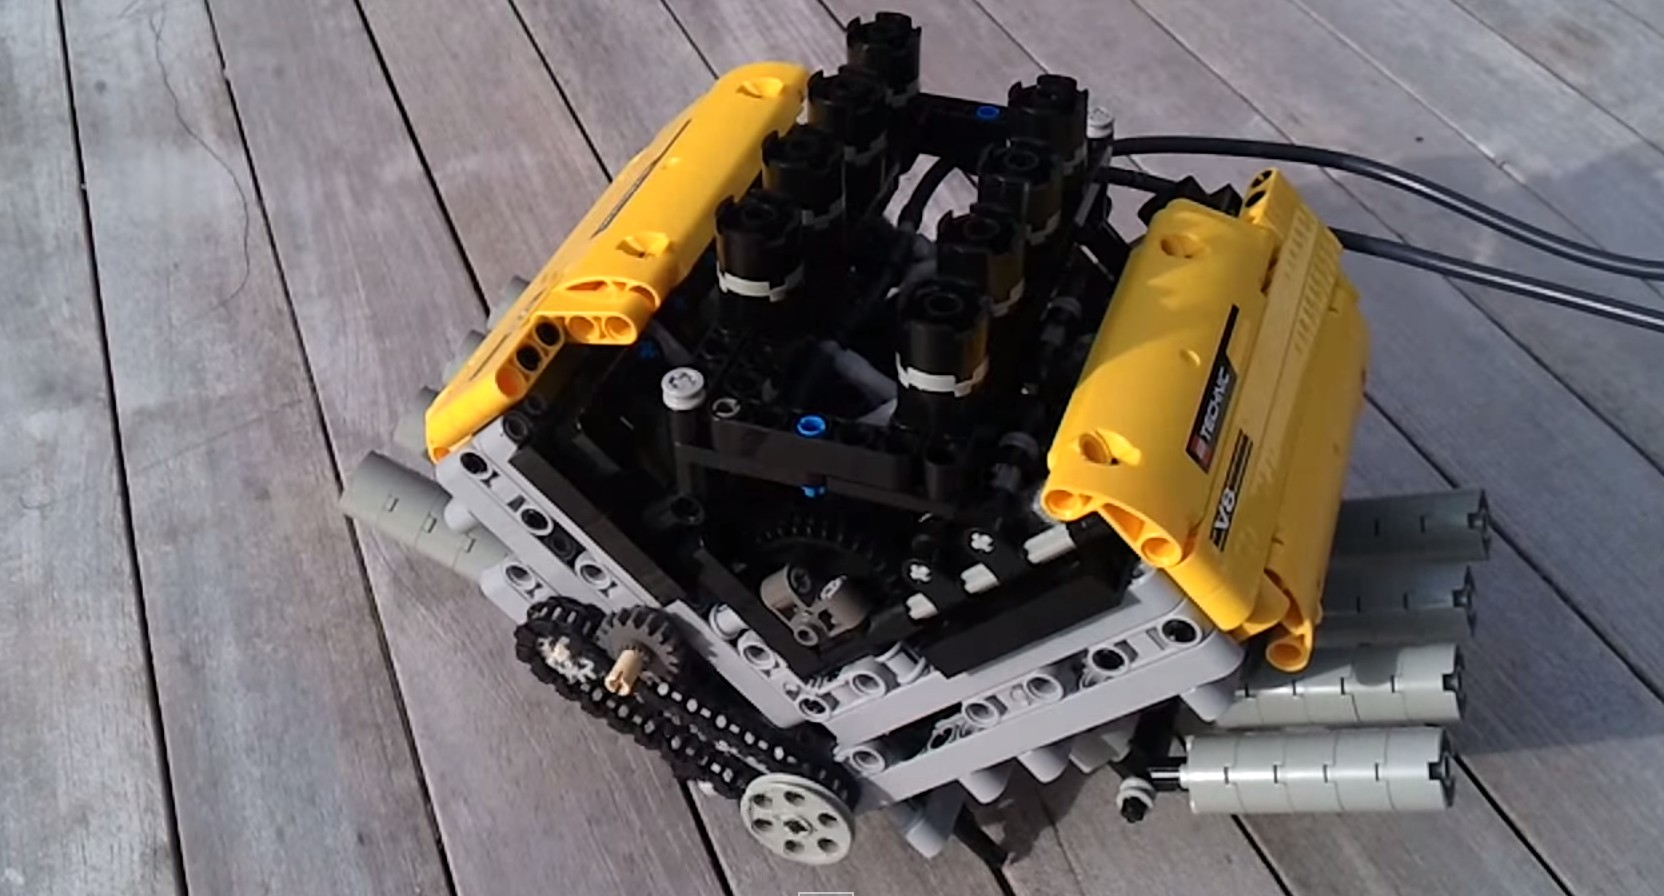 Lego V-8 And Six-Speed Sequential Gearbox Are Awesome